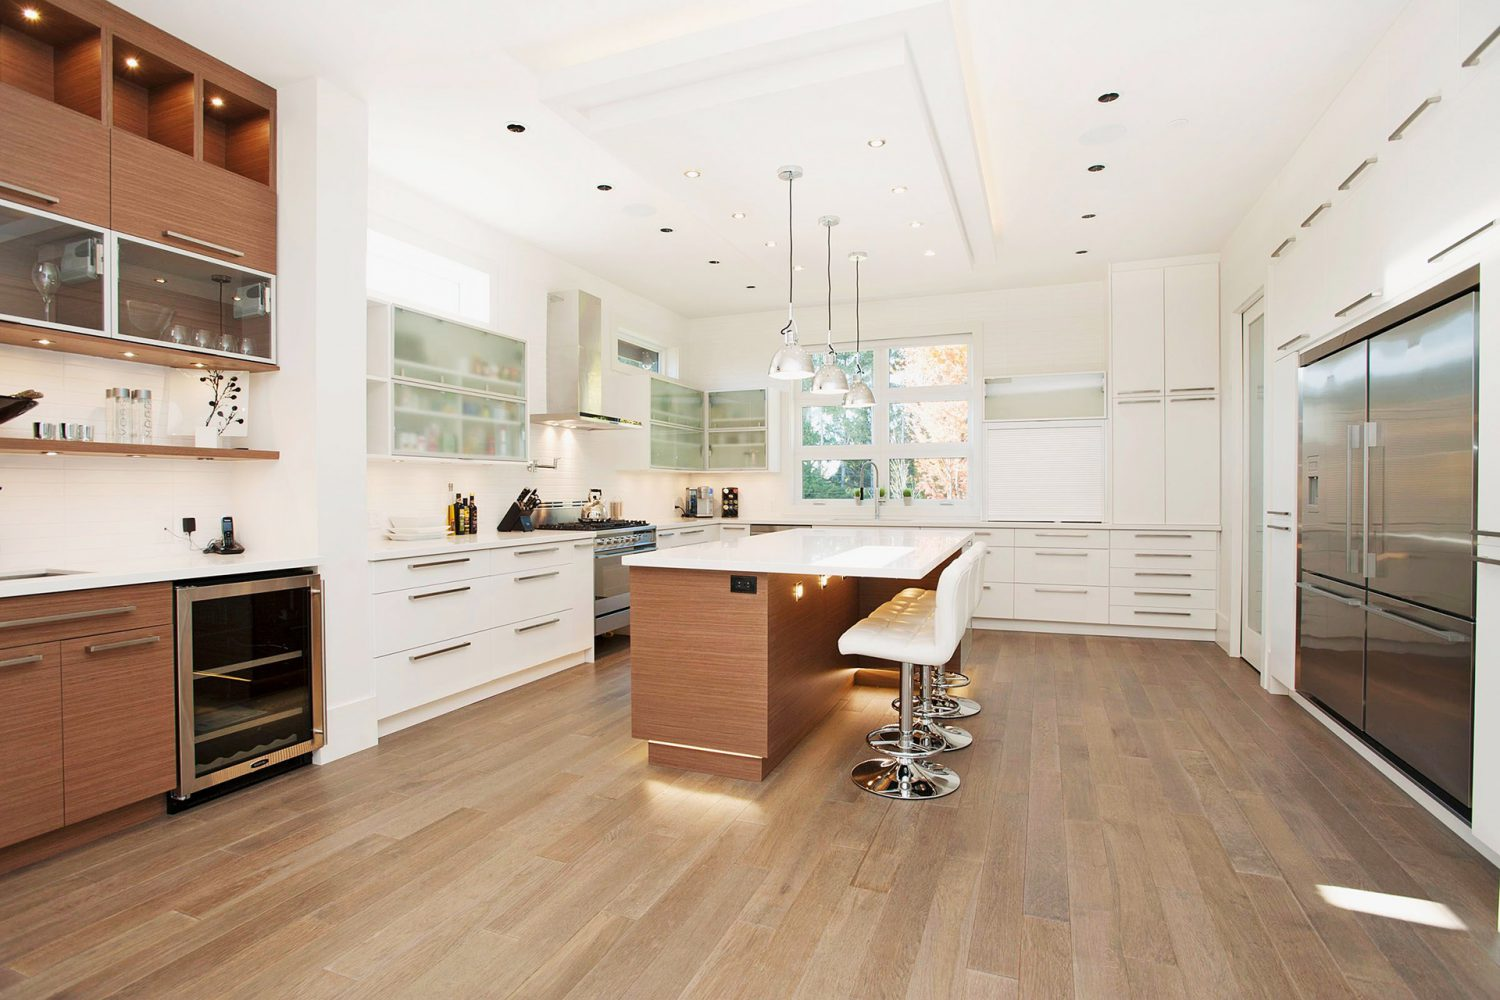 Forest interior designed white kitchen with rich wood accents by Midland Premium Properties in Vancouver, BC